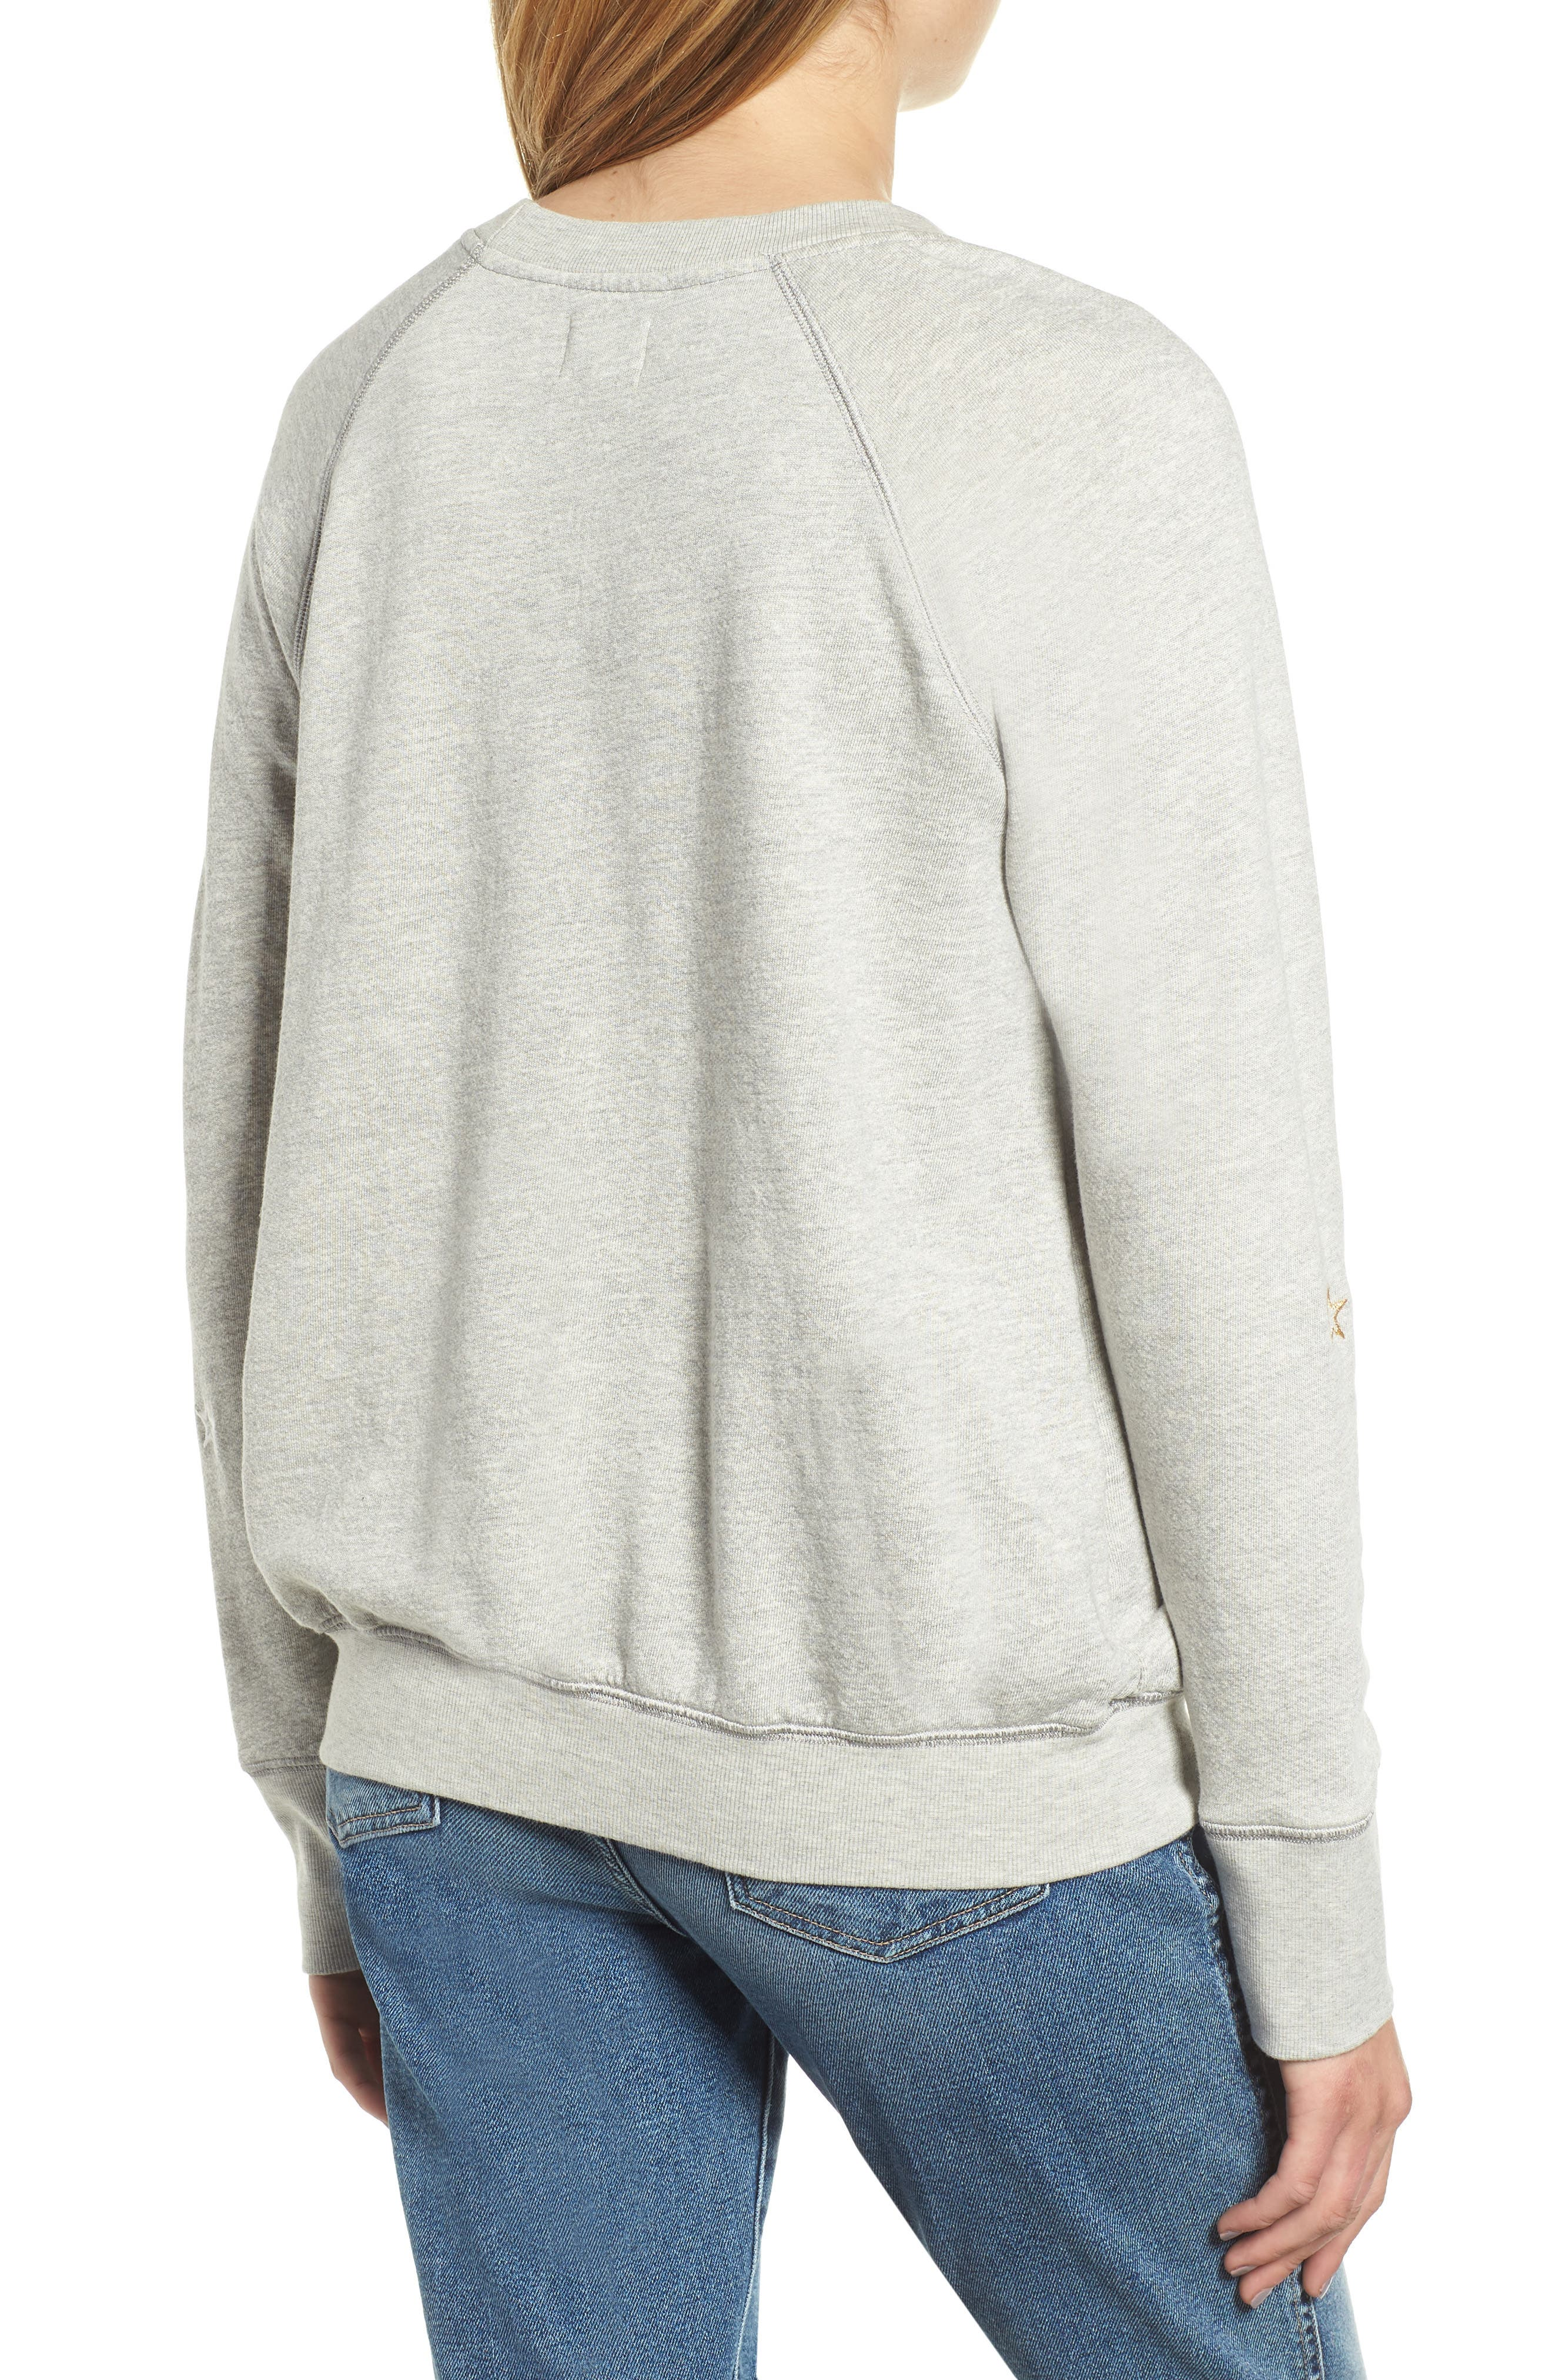 Star Embroidered Sweatshirt,                             Alternate thumbnail 2, color,                             HEATHER GREY